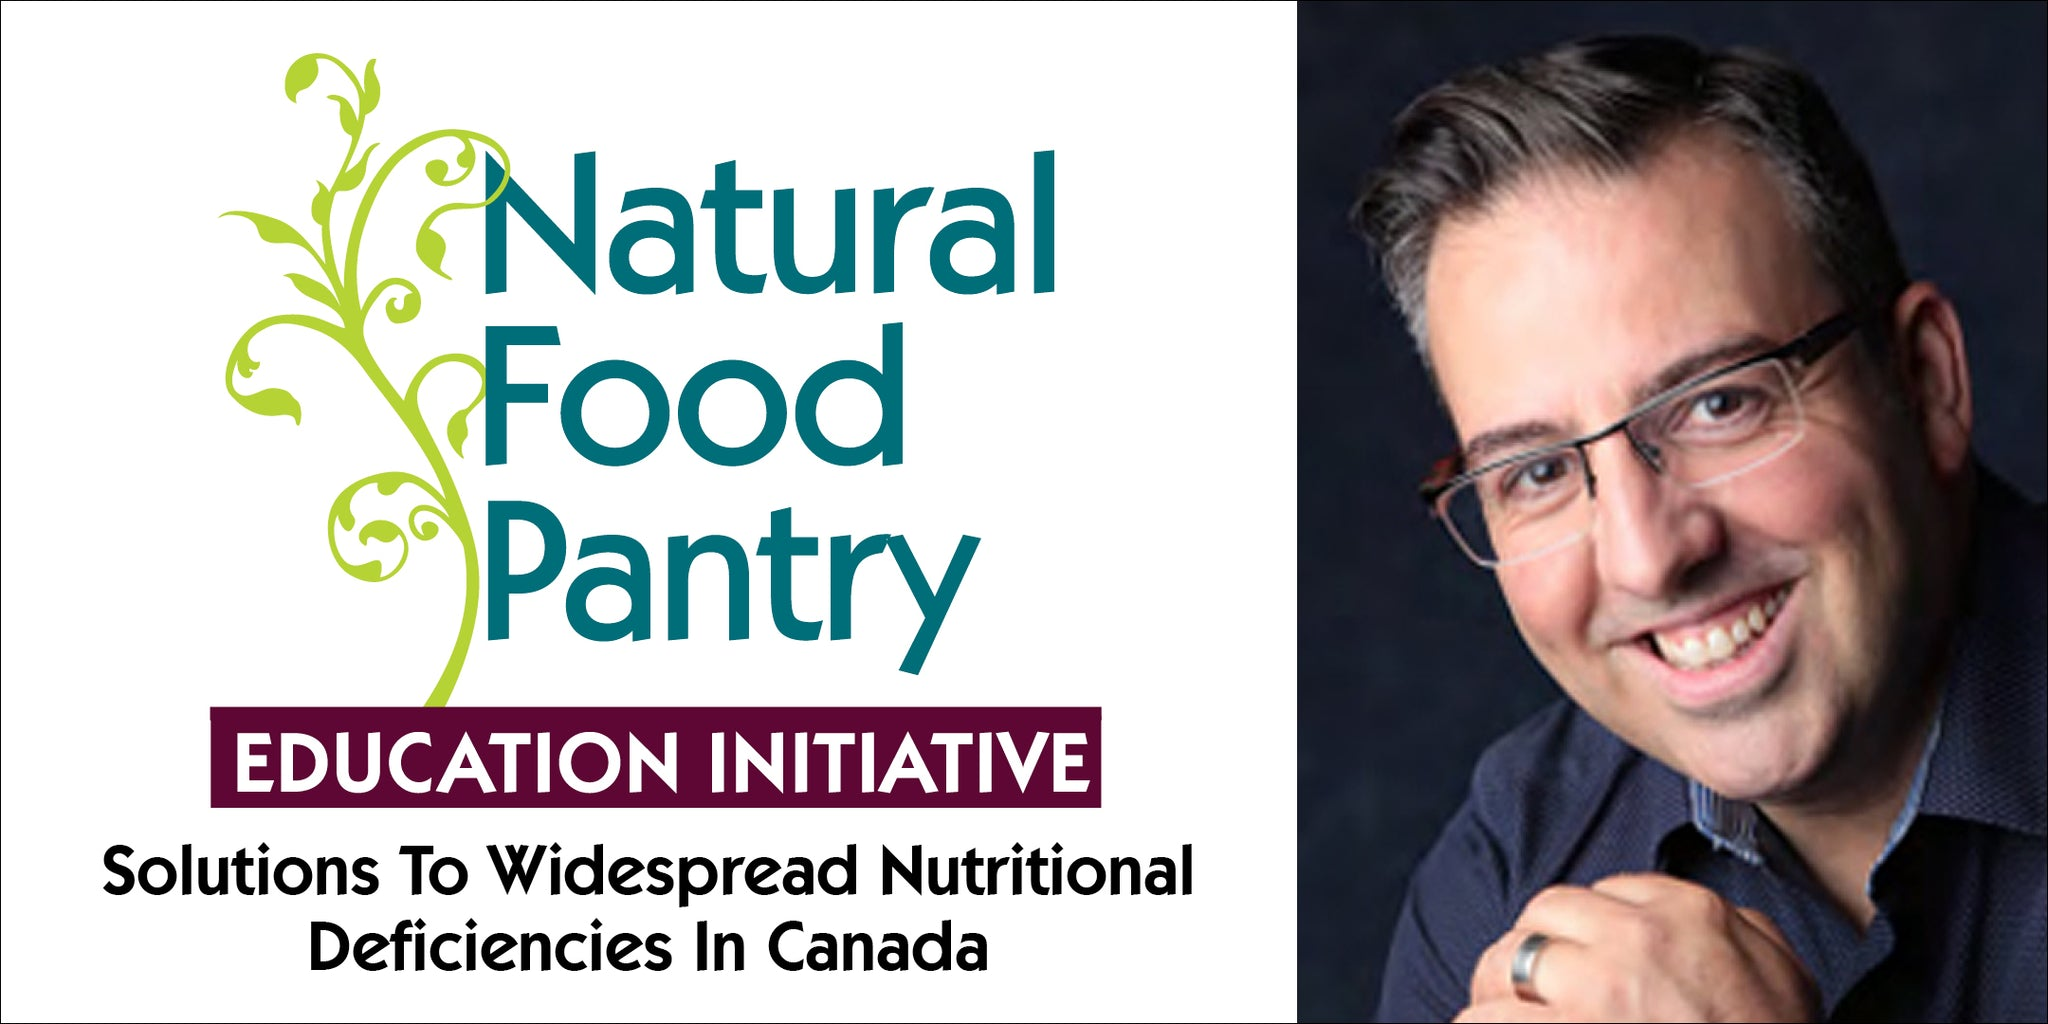 Sep 9: Solutions To Widespread Nutritional Deficiencies In Canada